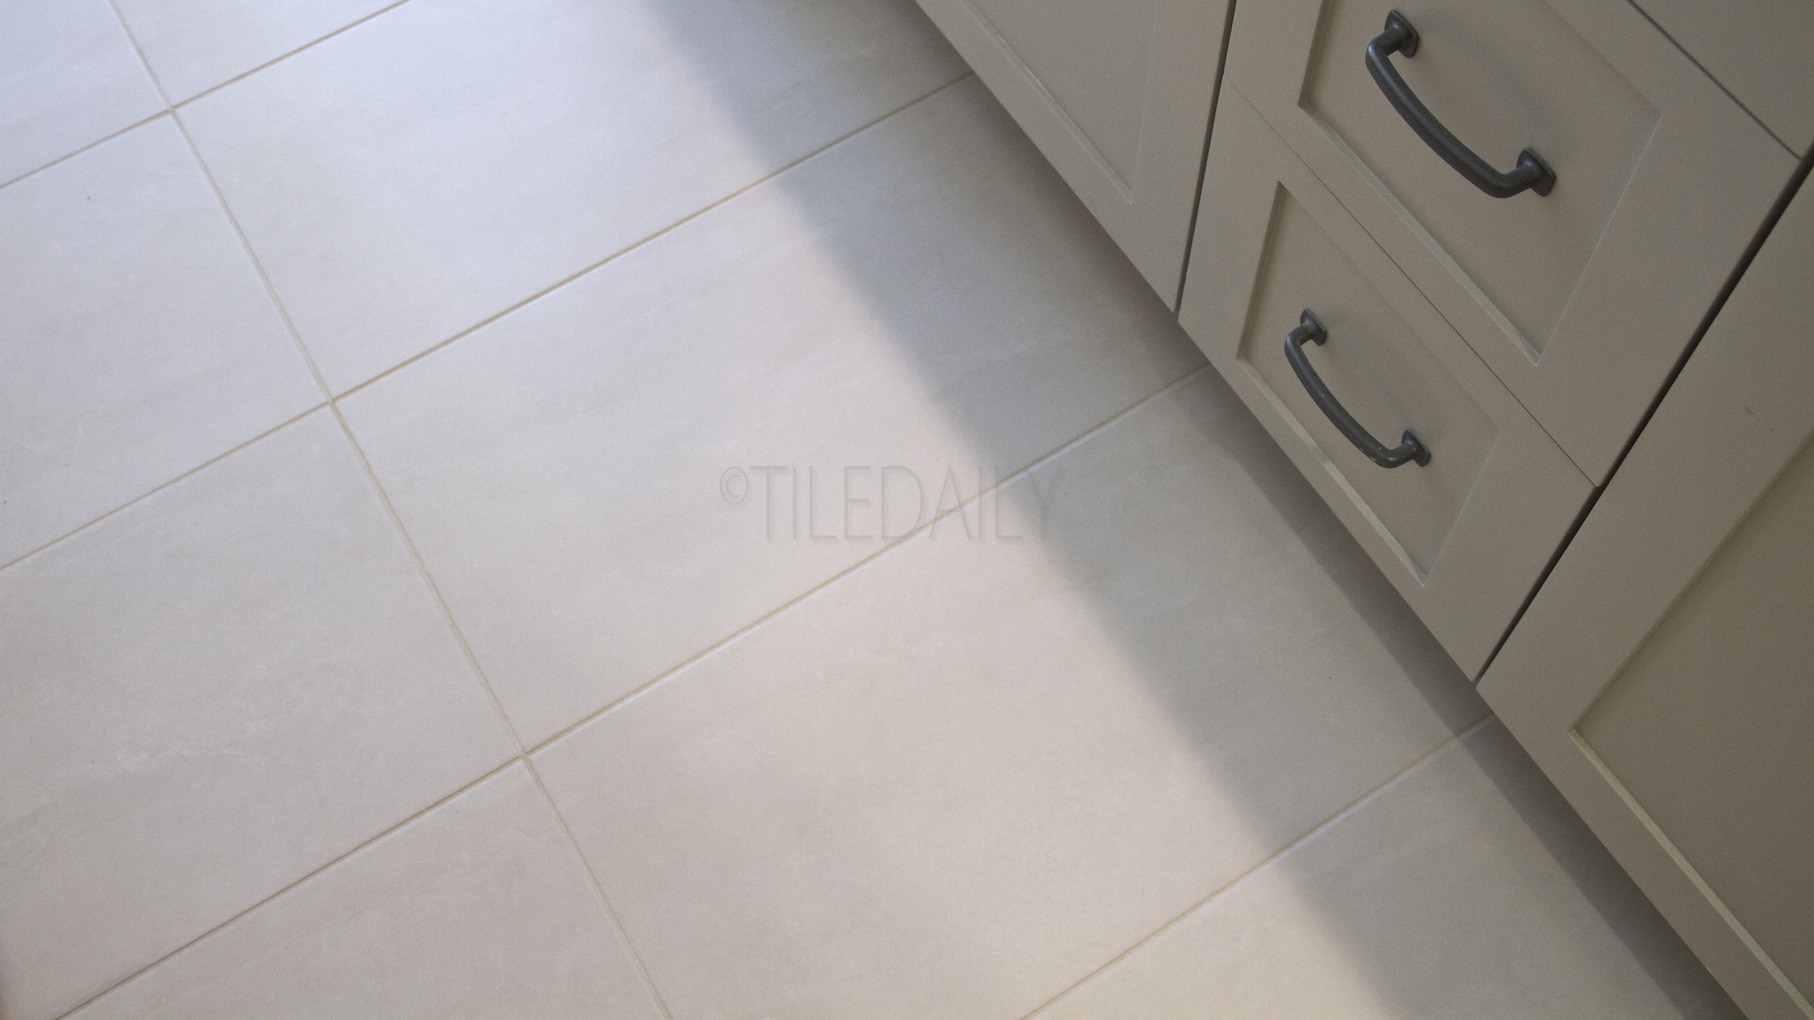 Mosaic tiledaily cream wall tile p0012ow 12x24 bamboo pattern porcelain tile off white floor tile p0021lbg 12x24 quartz vein porcelain tile light beige dailygadgetfo Choice Image